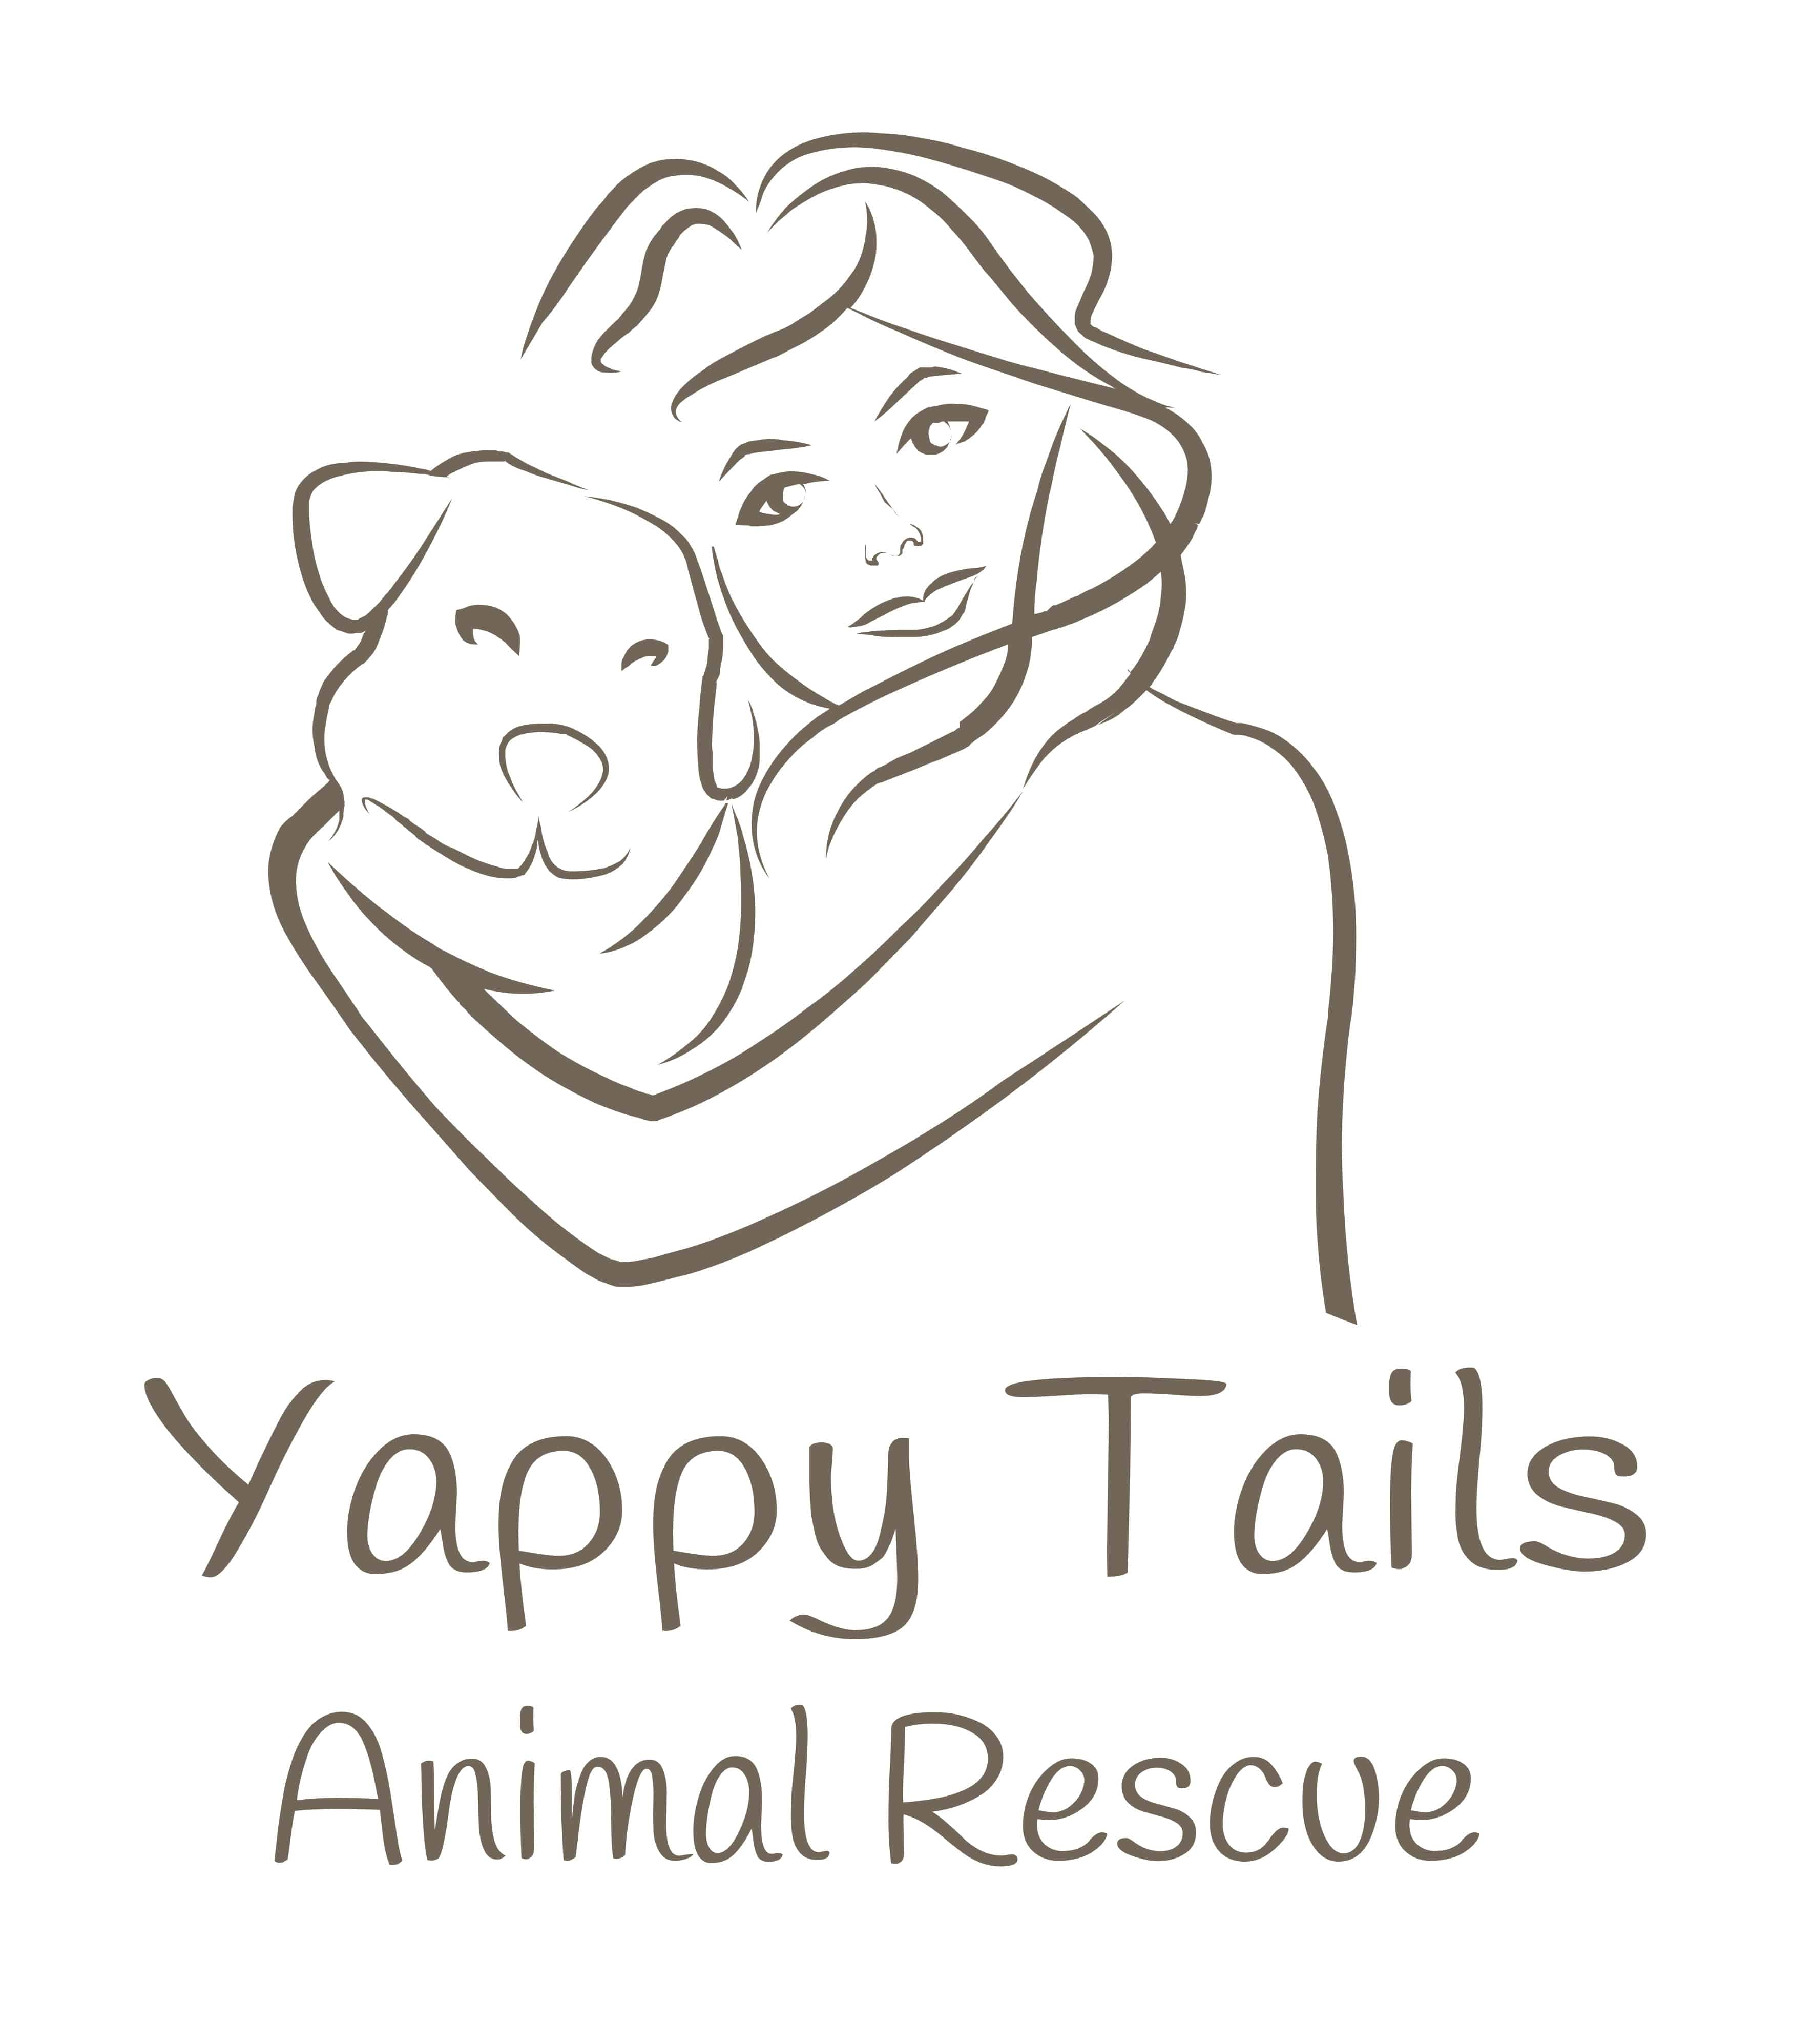 """A doodle woman holding a dog over the text, """"Yappy Tails Animal Rescue"""""""